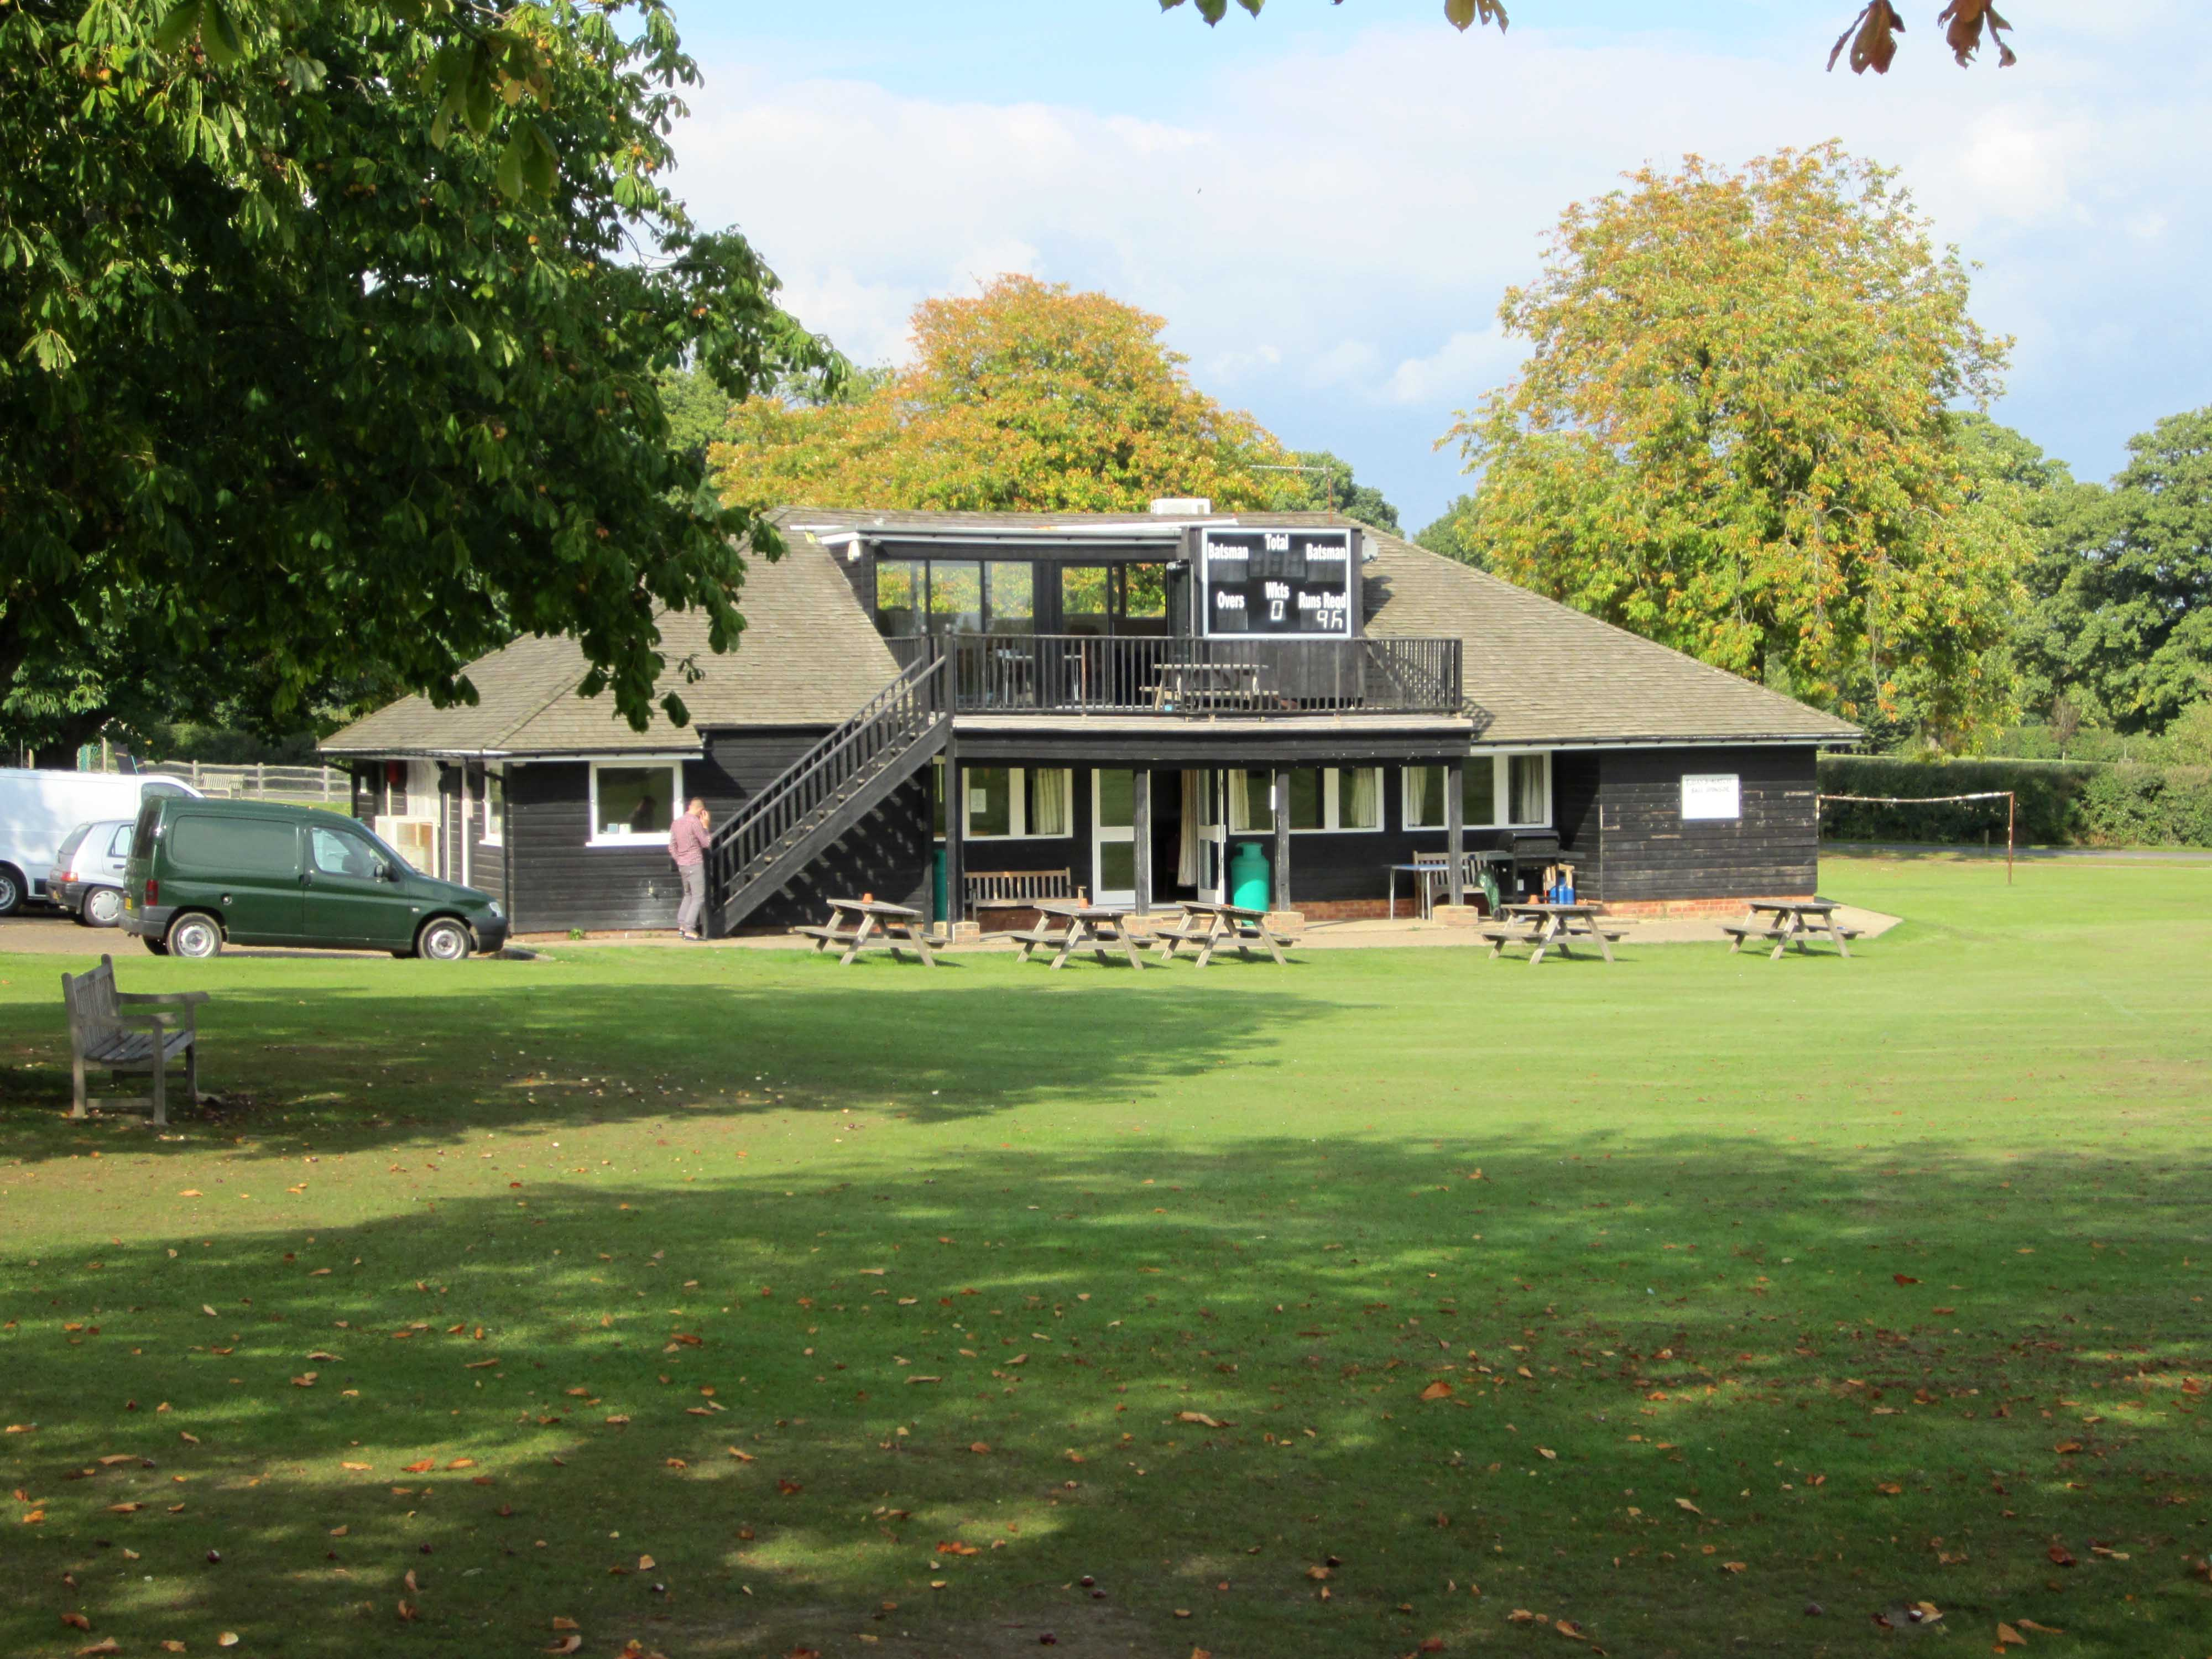 The Sports Pavilion on the Green